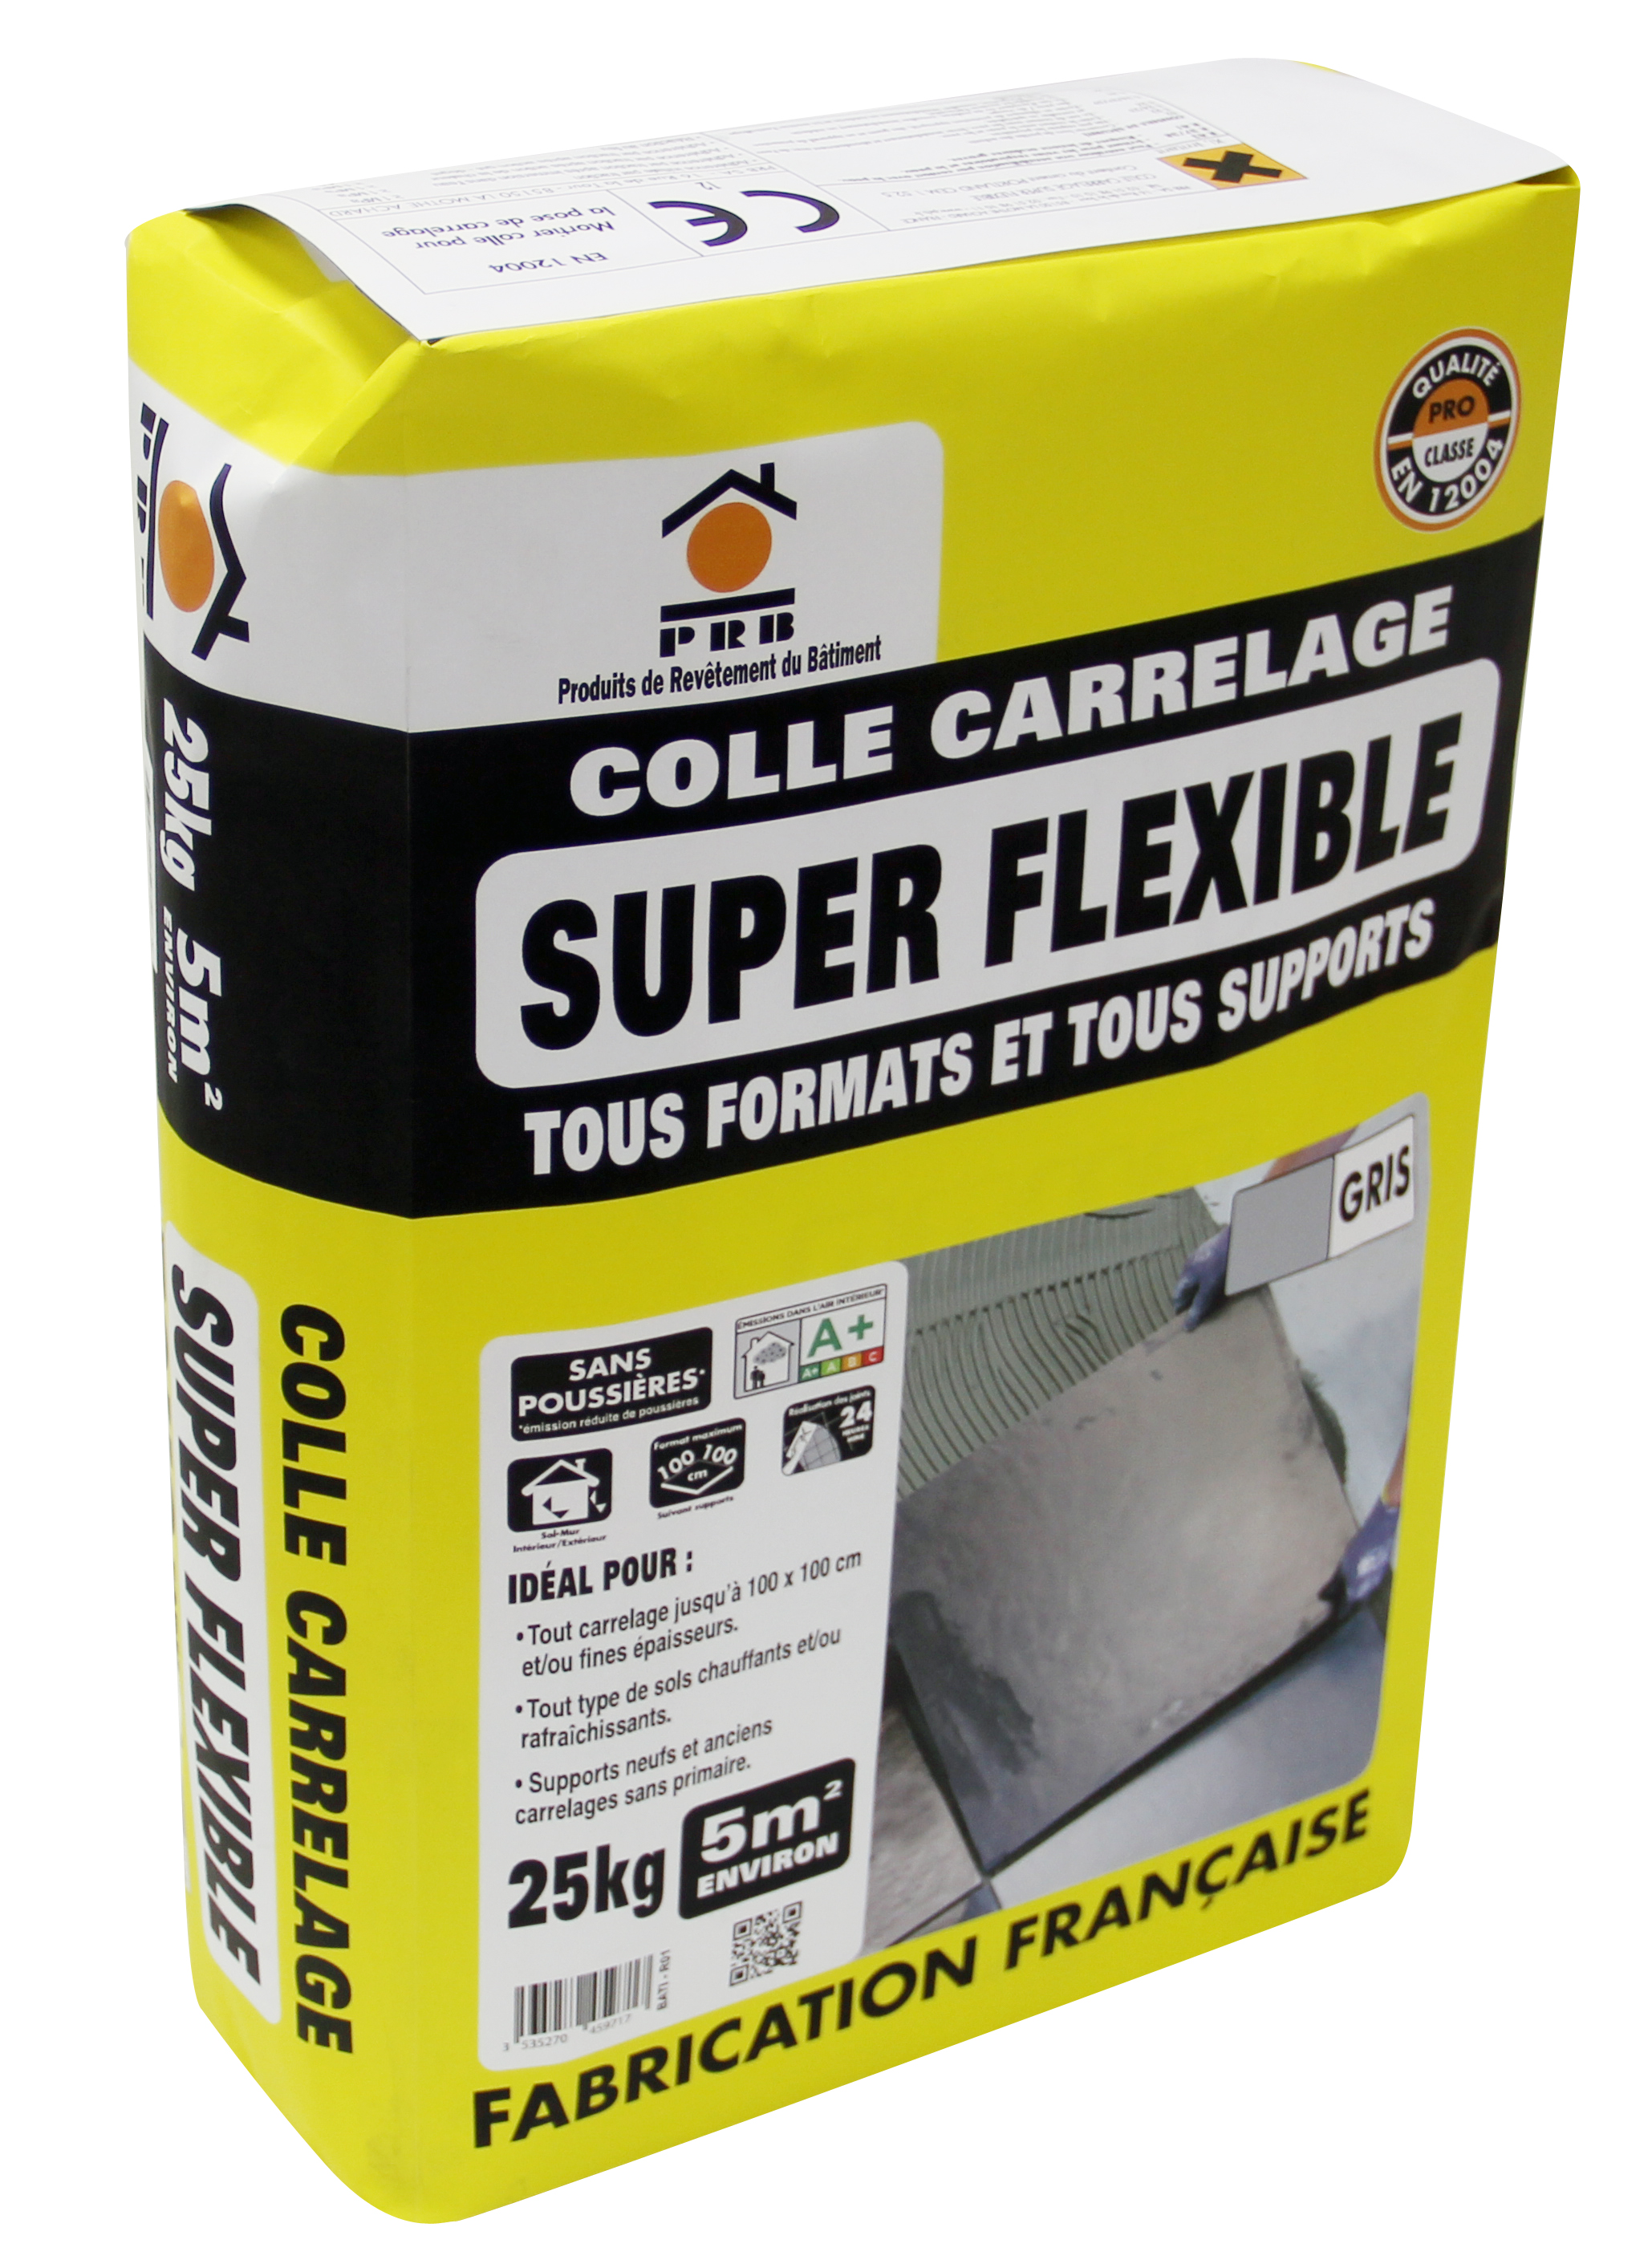 Lmb for Colle carrelage flex